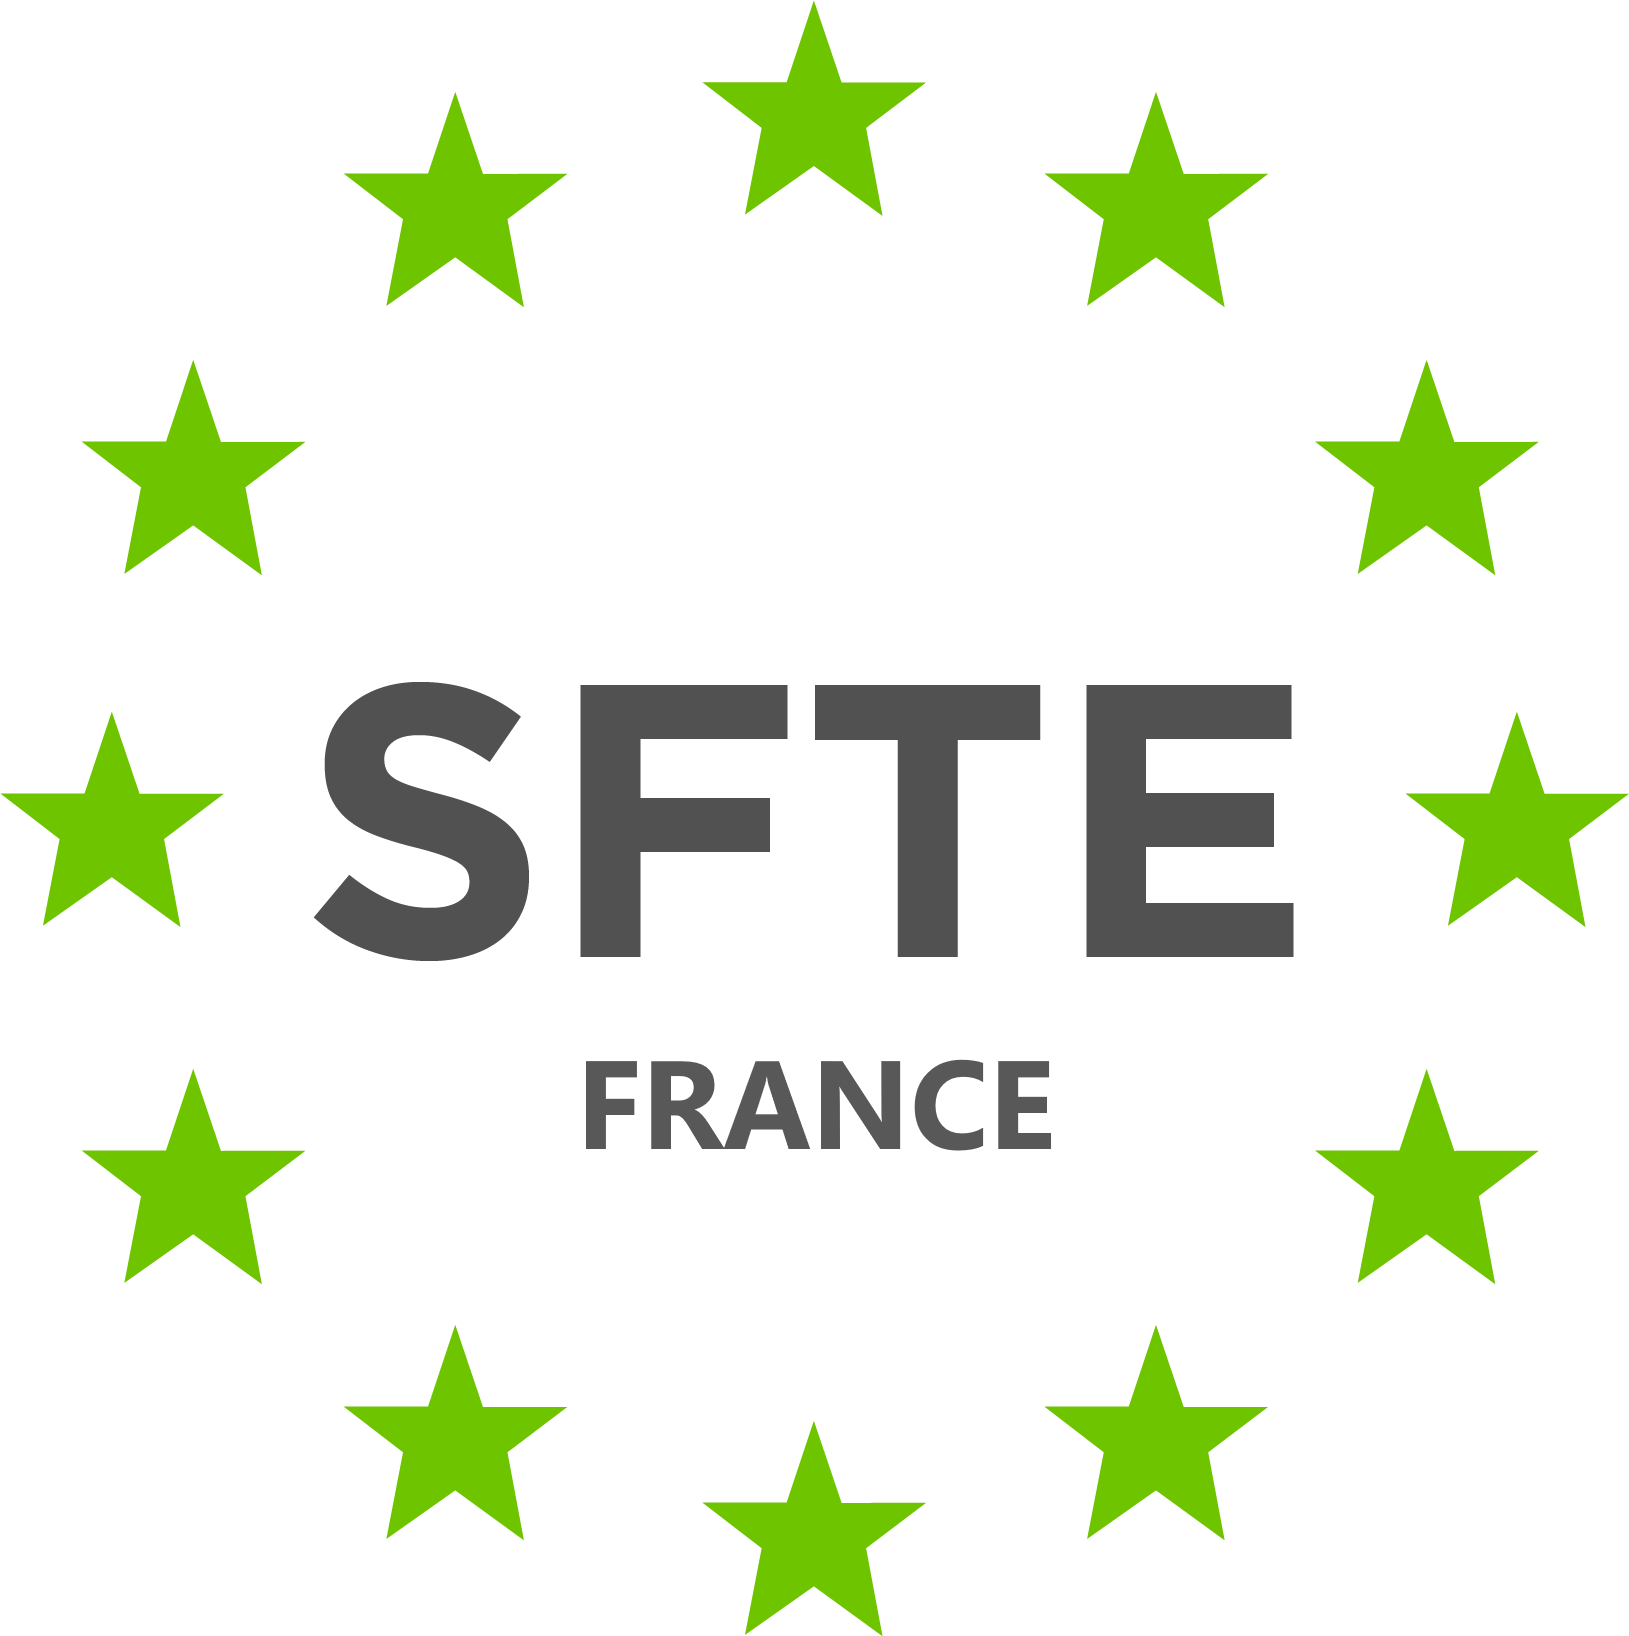 SFTE France